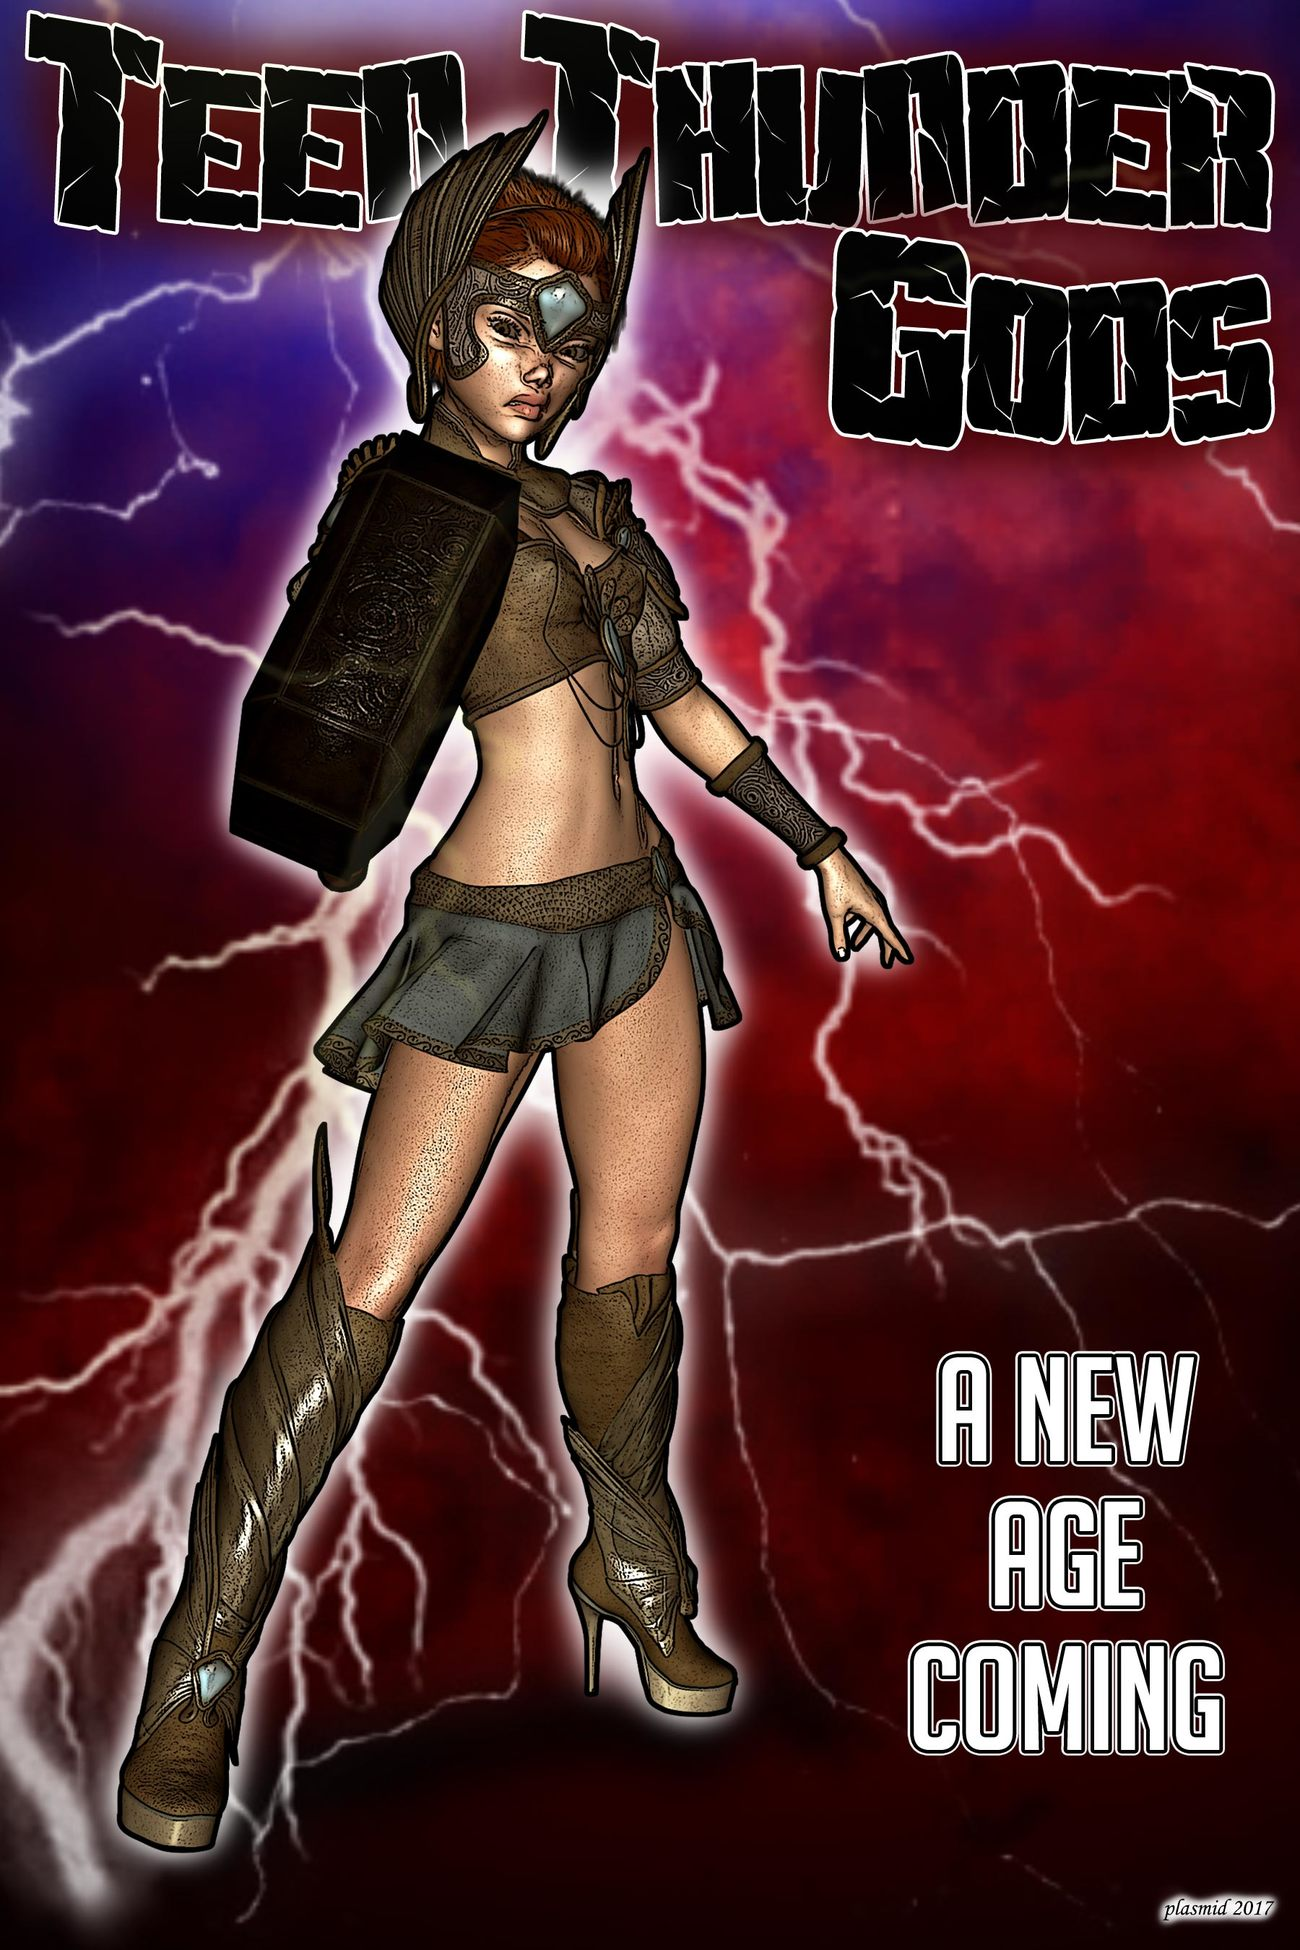 Teen Thunder Gods: A New Age Coming by plasmid